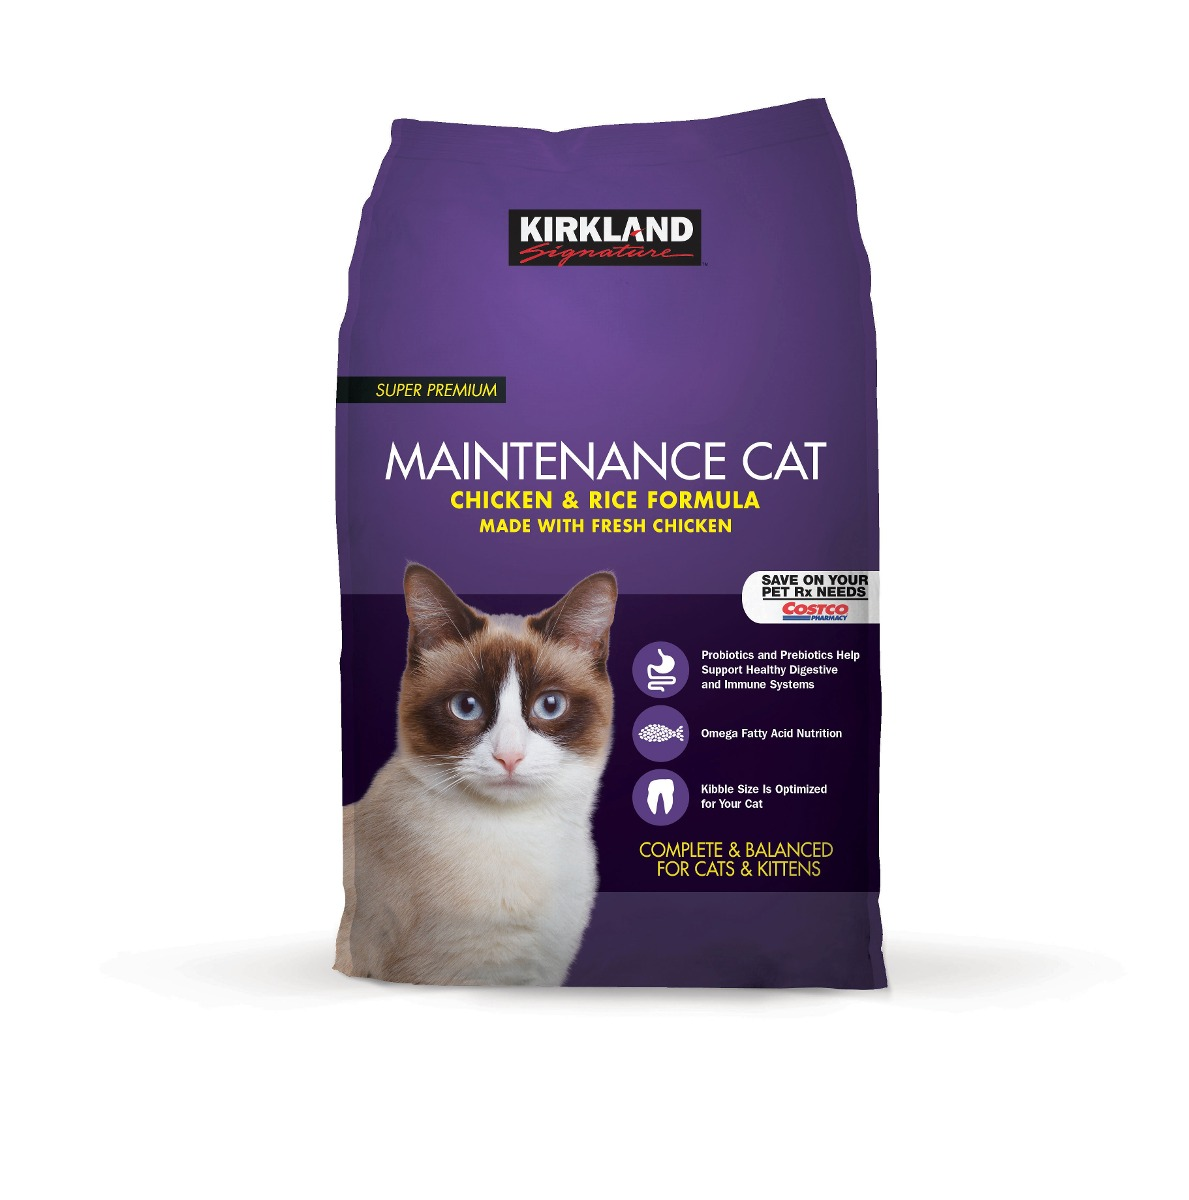 Permalink to Kirkland Cat Food